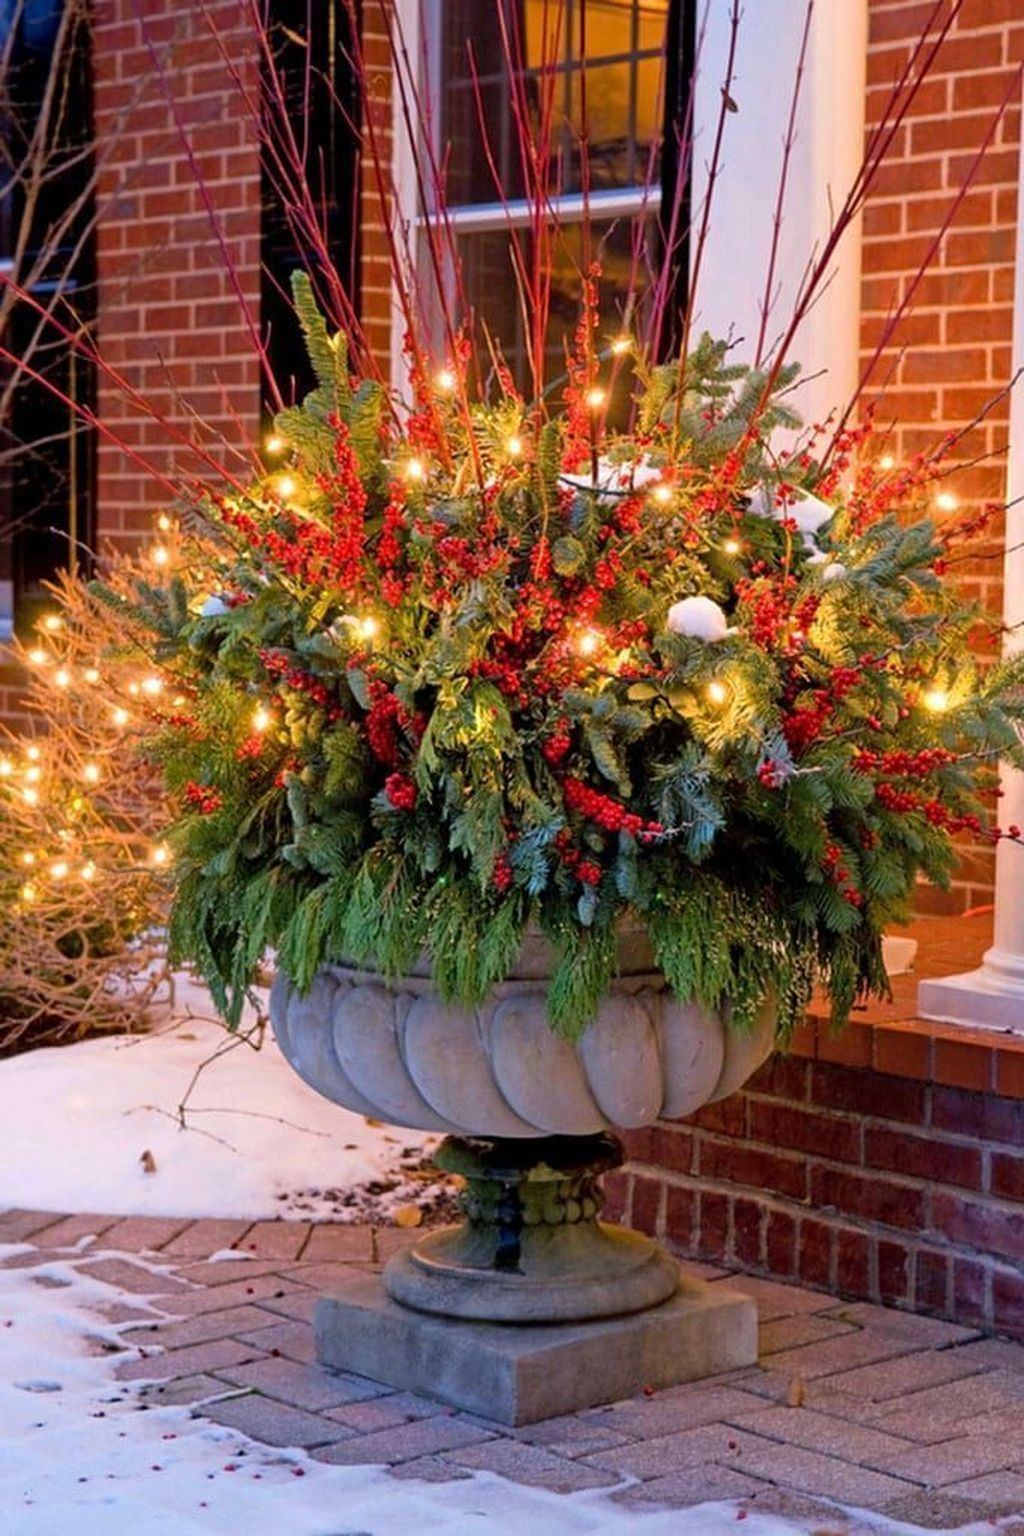 34 Amazing Winter Outdoor Decor Ideas That Will You Like